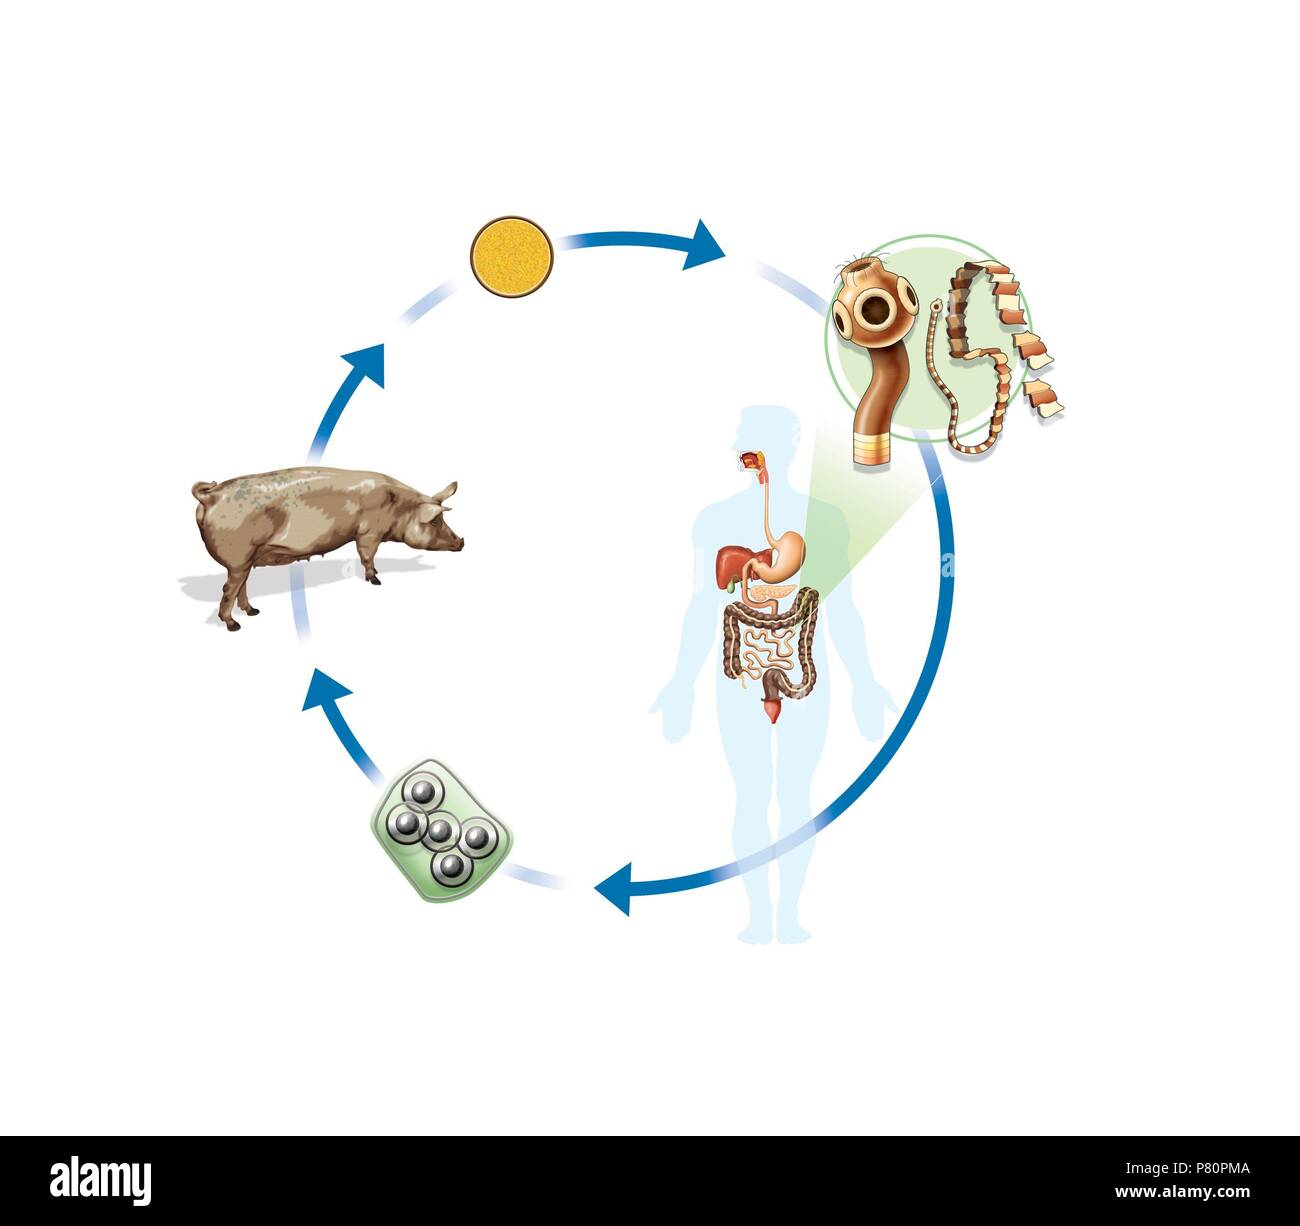 Life cycle of the tapeworm Stock Photo: 211459482 - Alamy